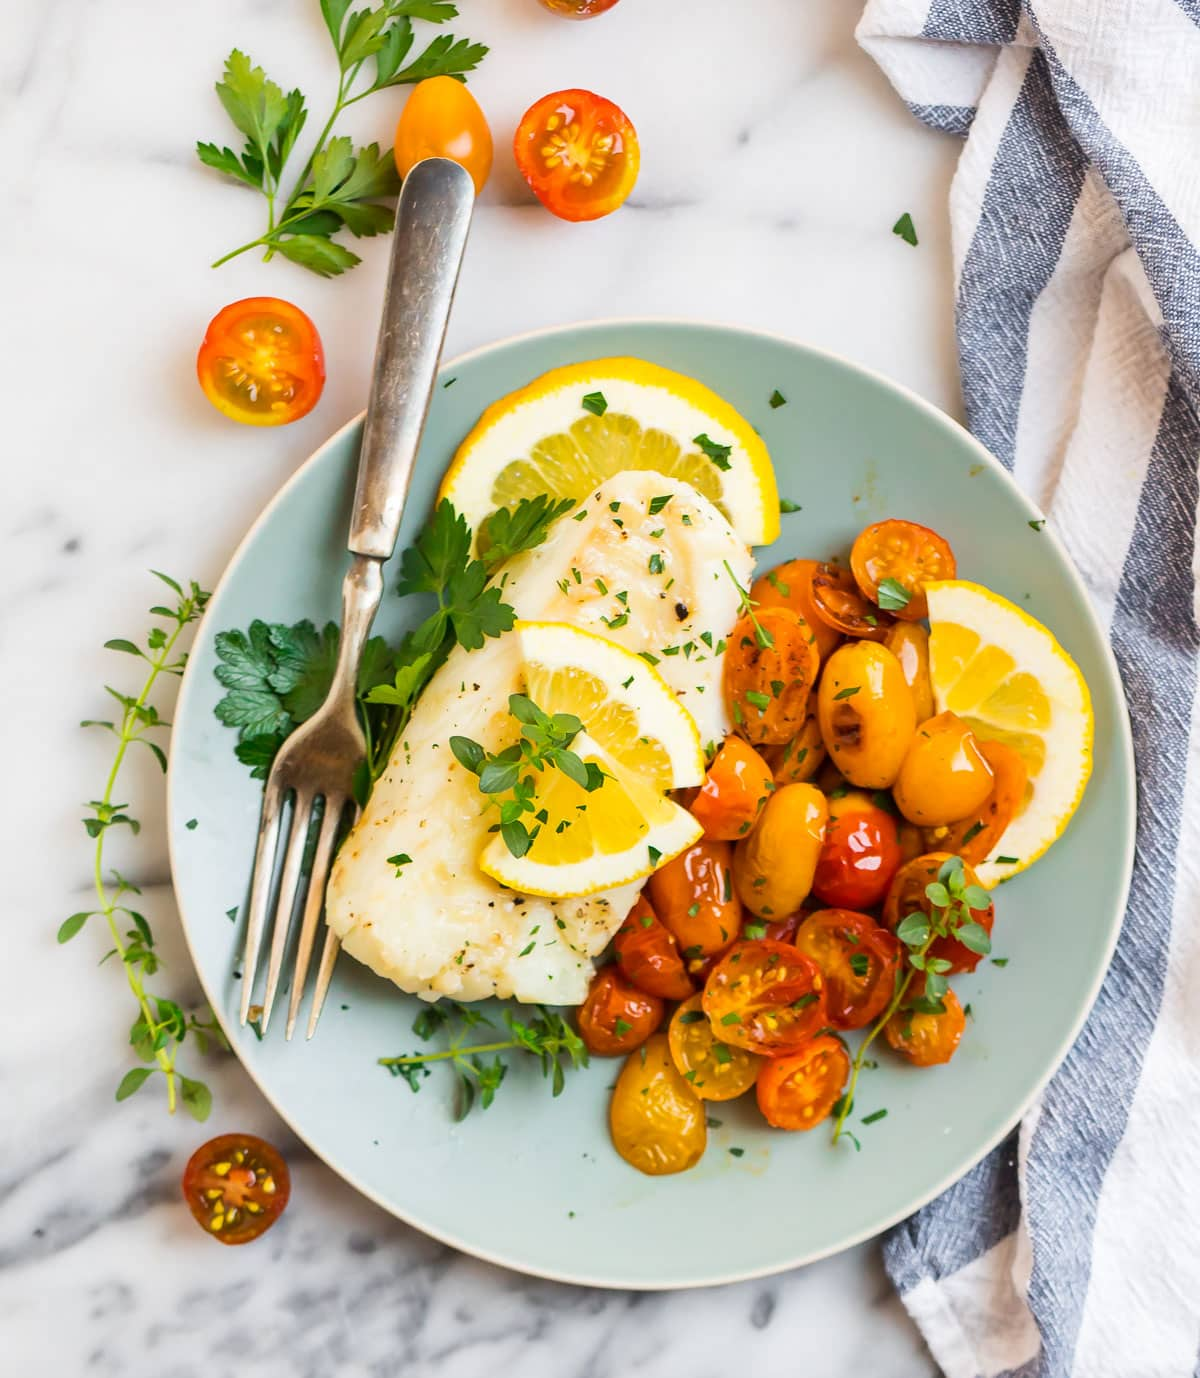 A plate of pan fried cod with tomatoes and lemon